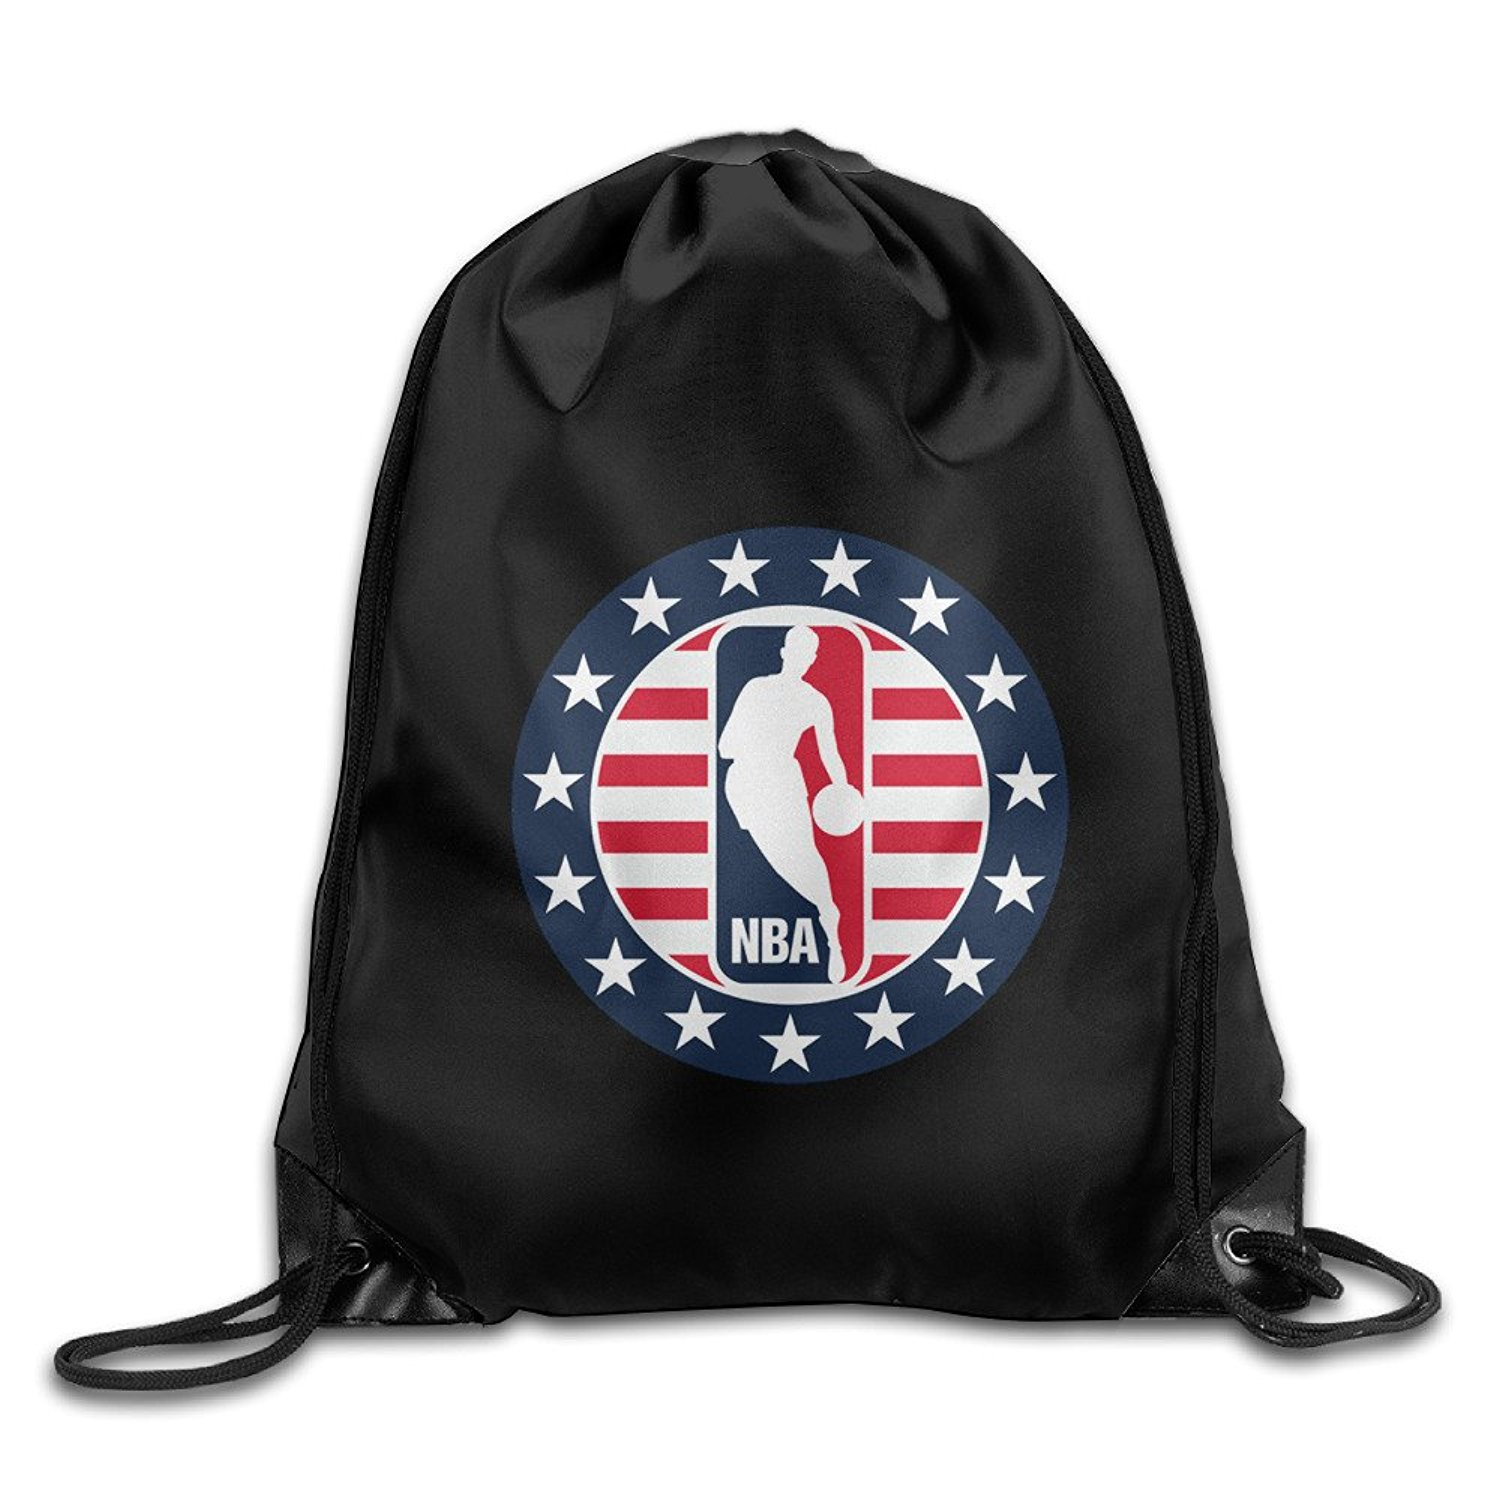 606e229e68 Get Quotations · NBA Hoops For Troops Logo Drawstring Backpack Bag White